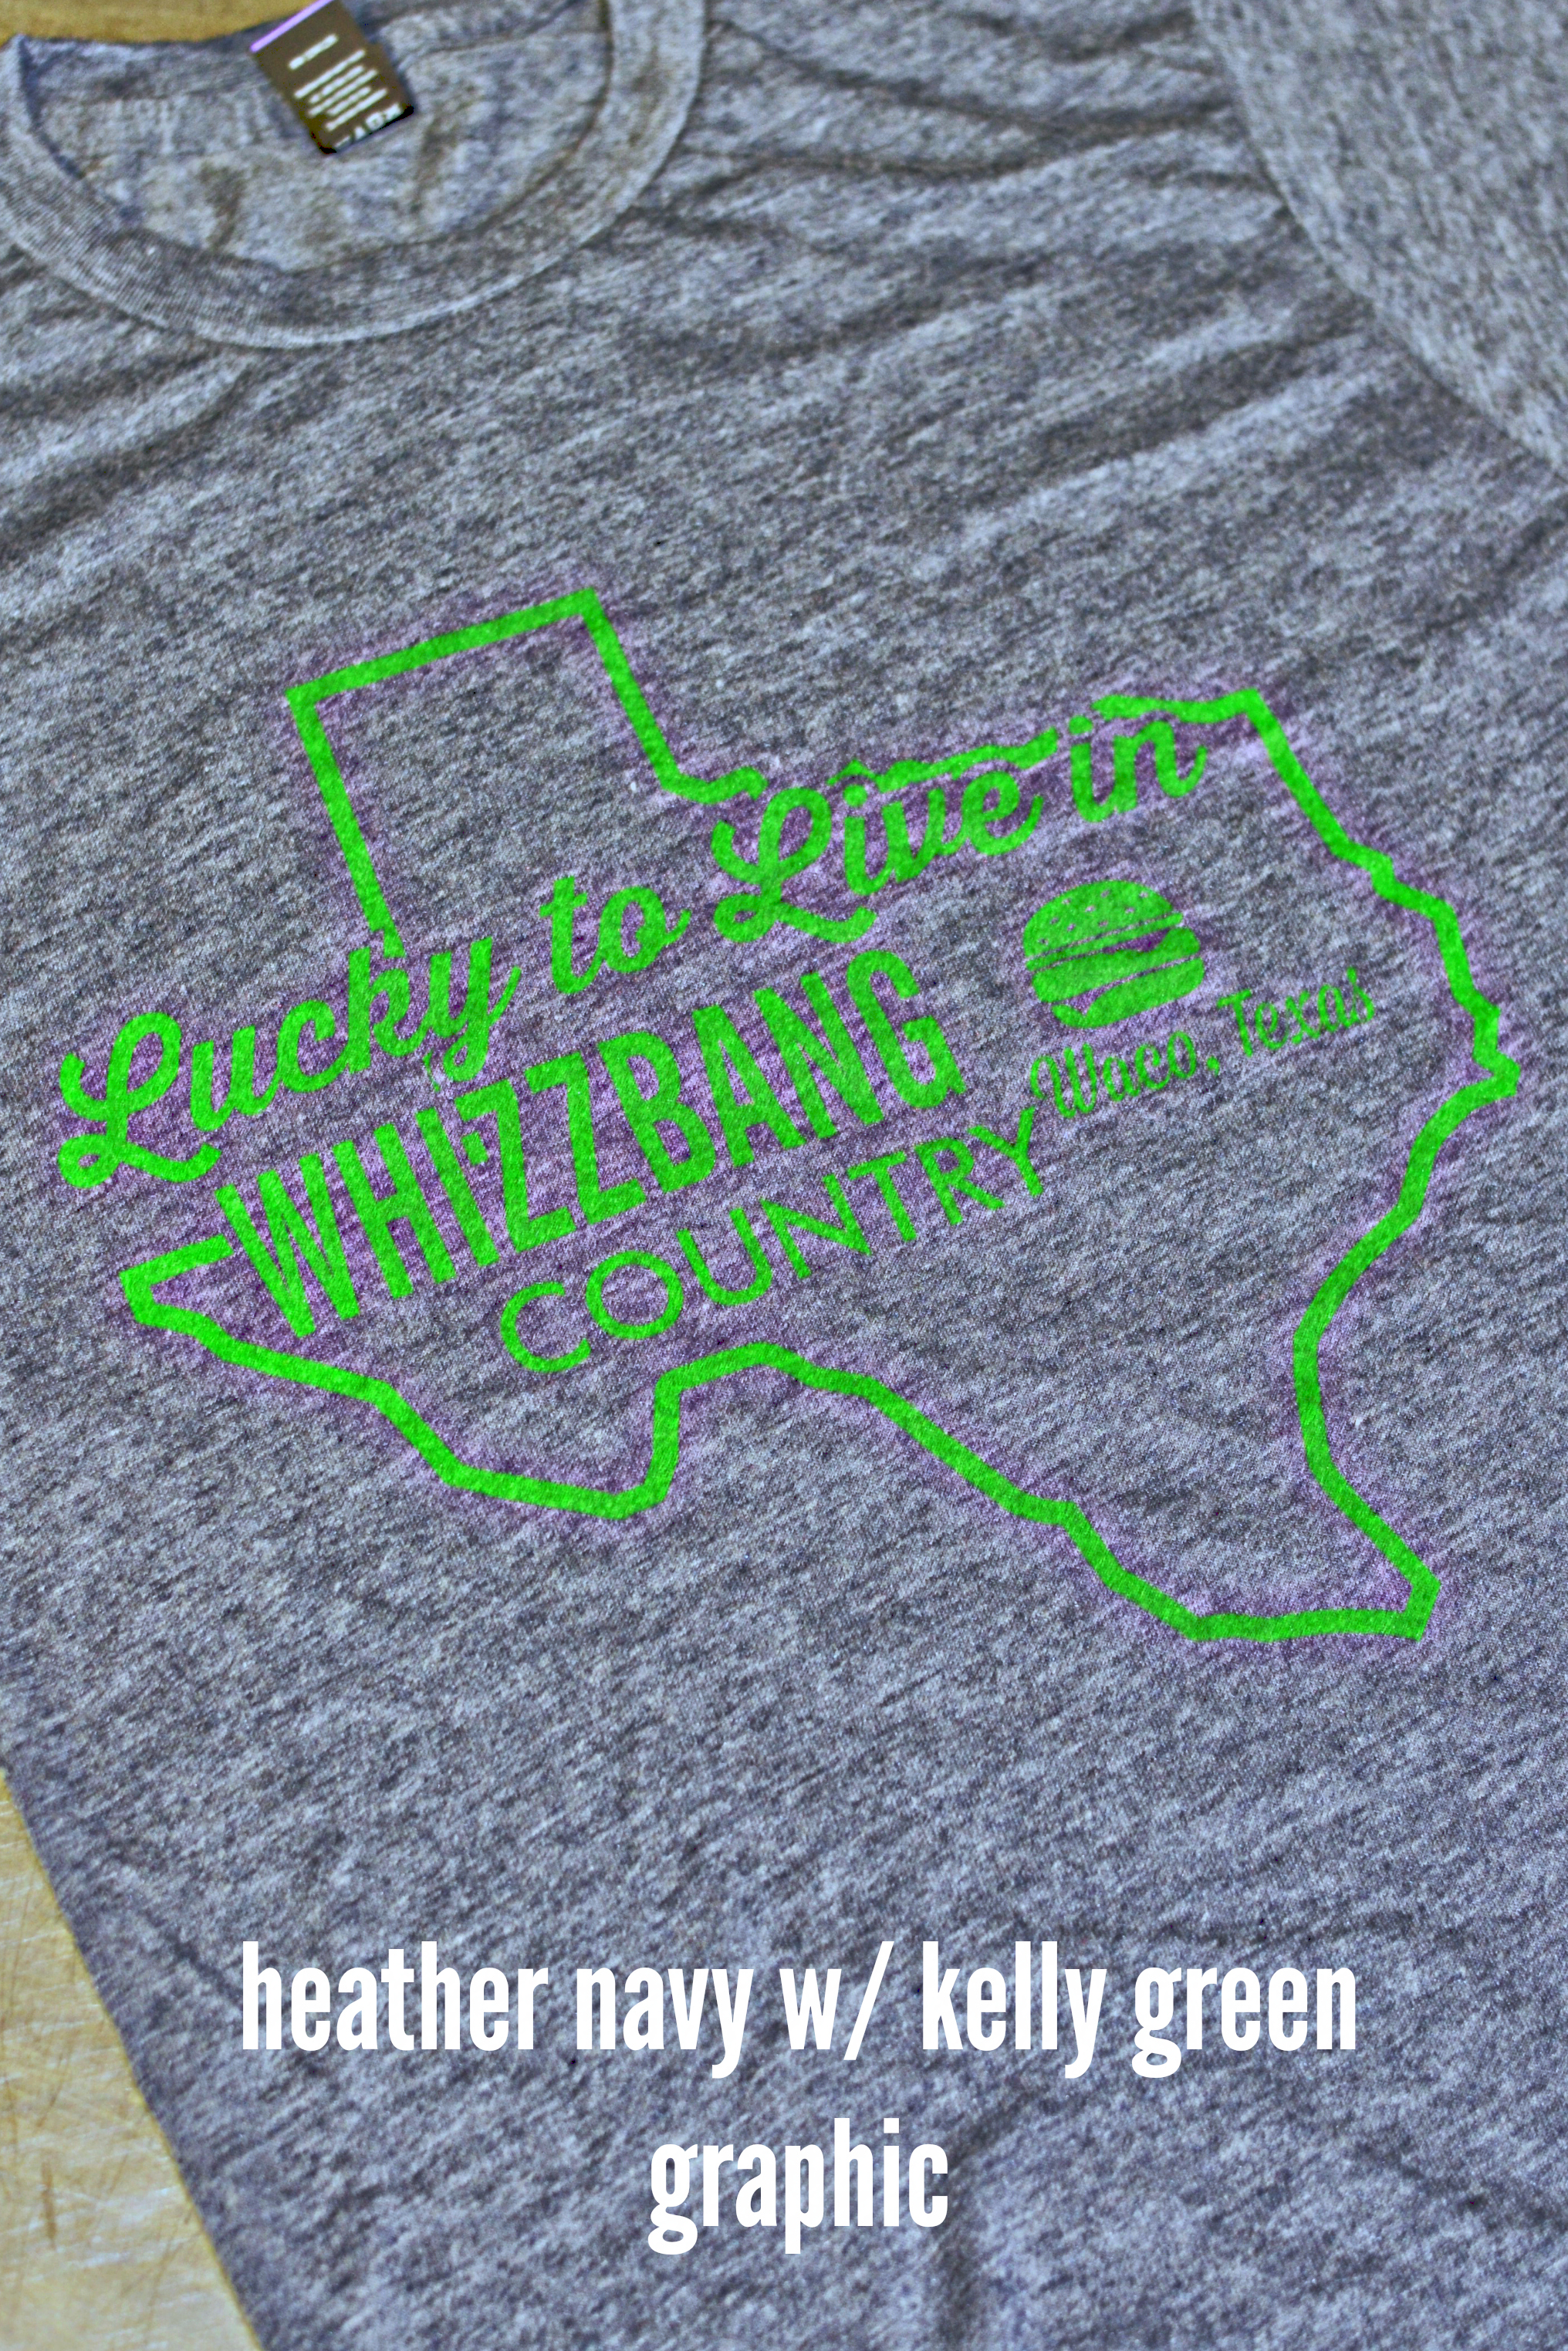 Heather Navy w/ Kelly Green Texas Whizzbang T-Shirt Image